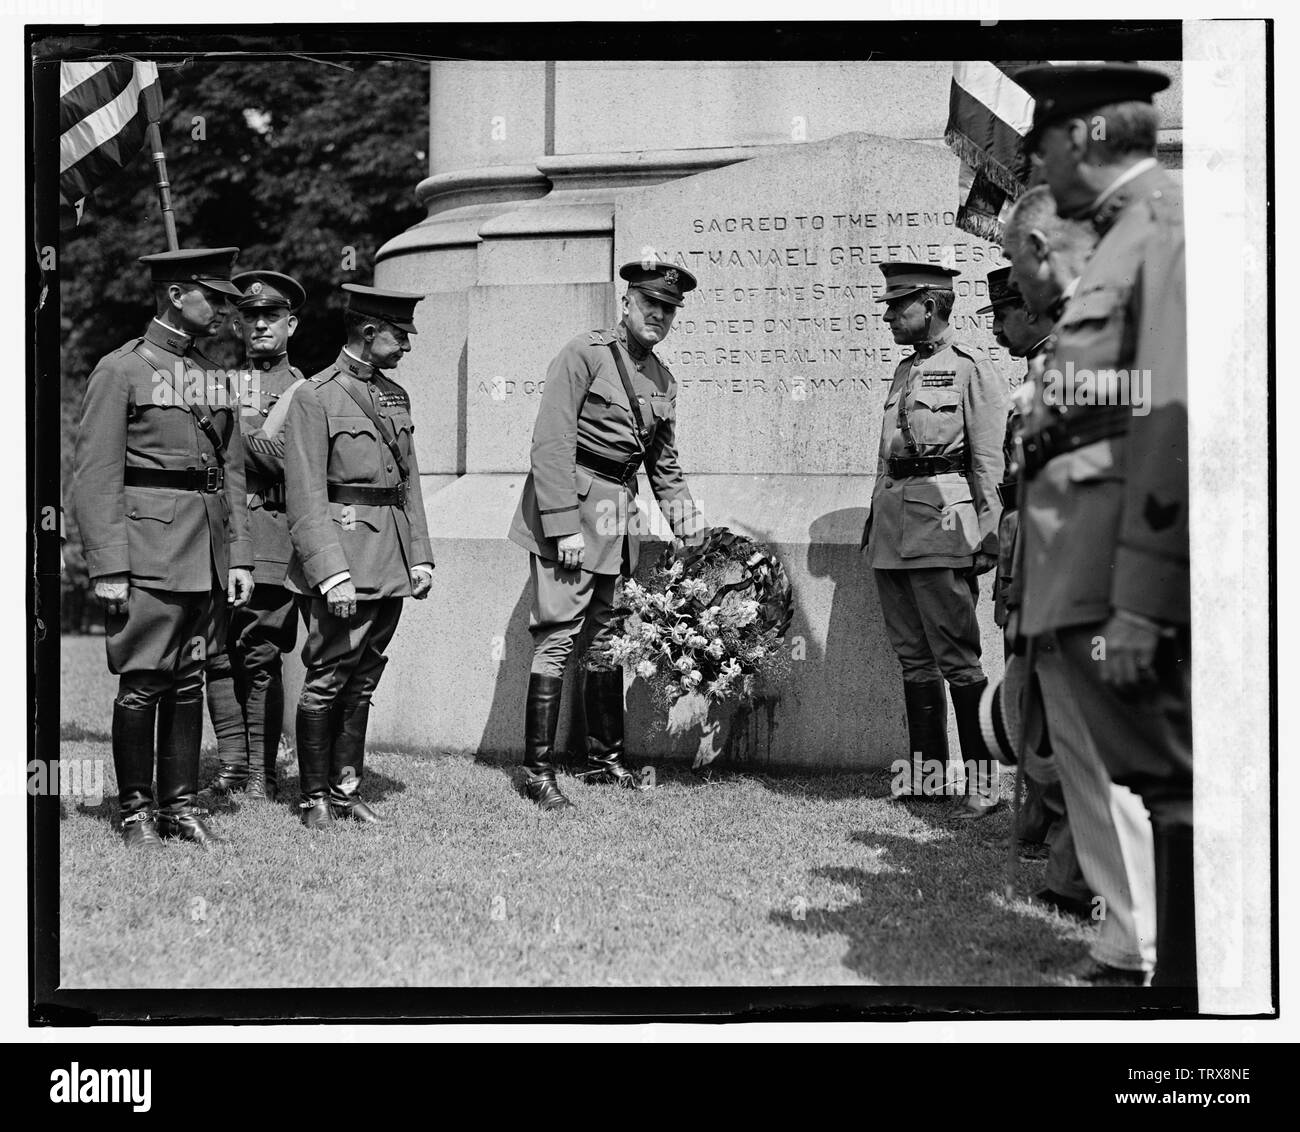 'English: Title: Anniversary ceremonies at statue of Nathaniel Greene, [8/7/24] Abstract/medium: National Photo Company Collection (Library of Congres - Stock Image